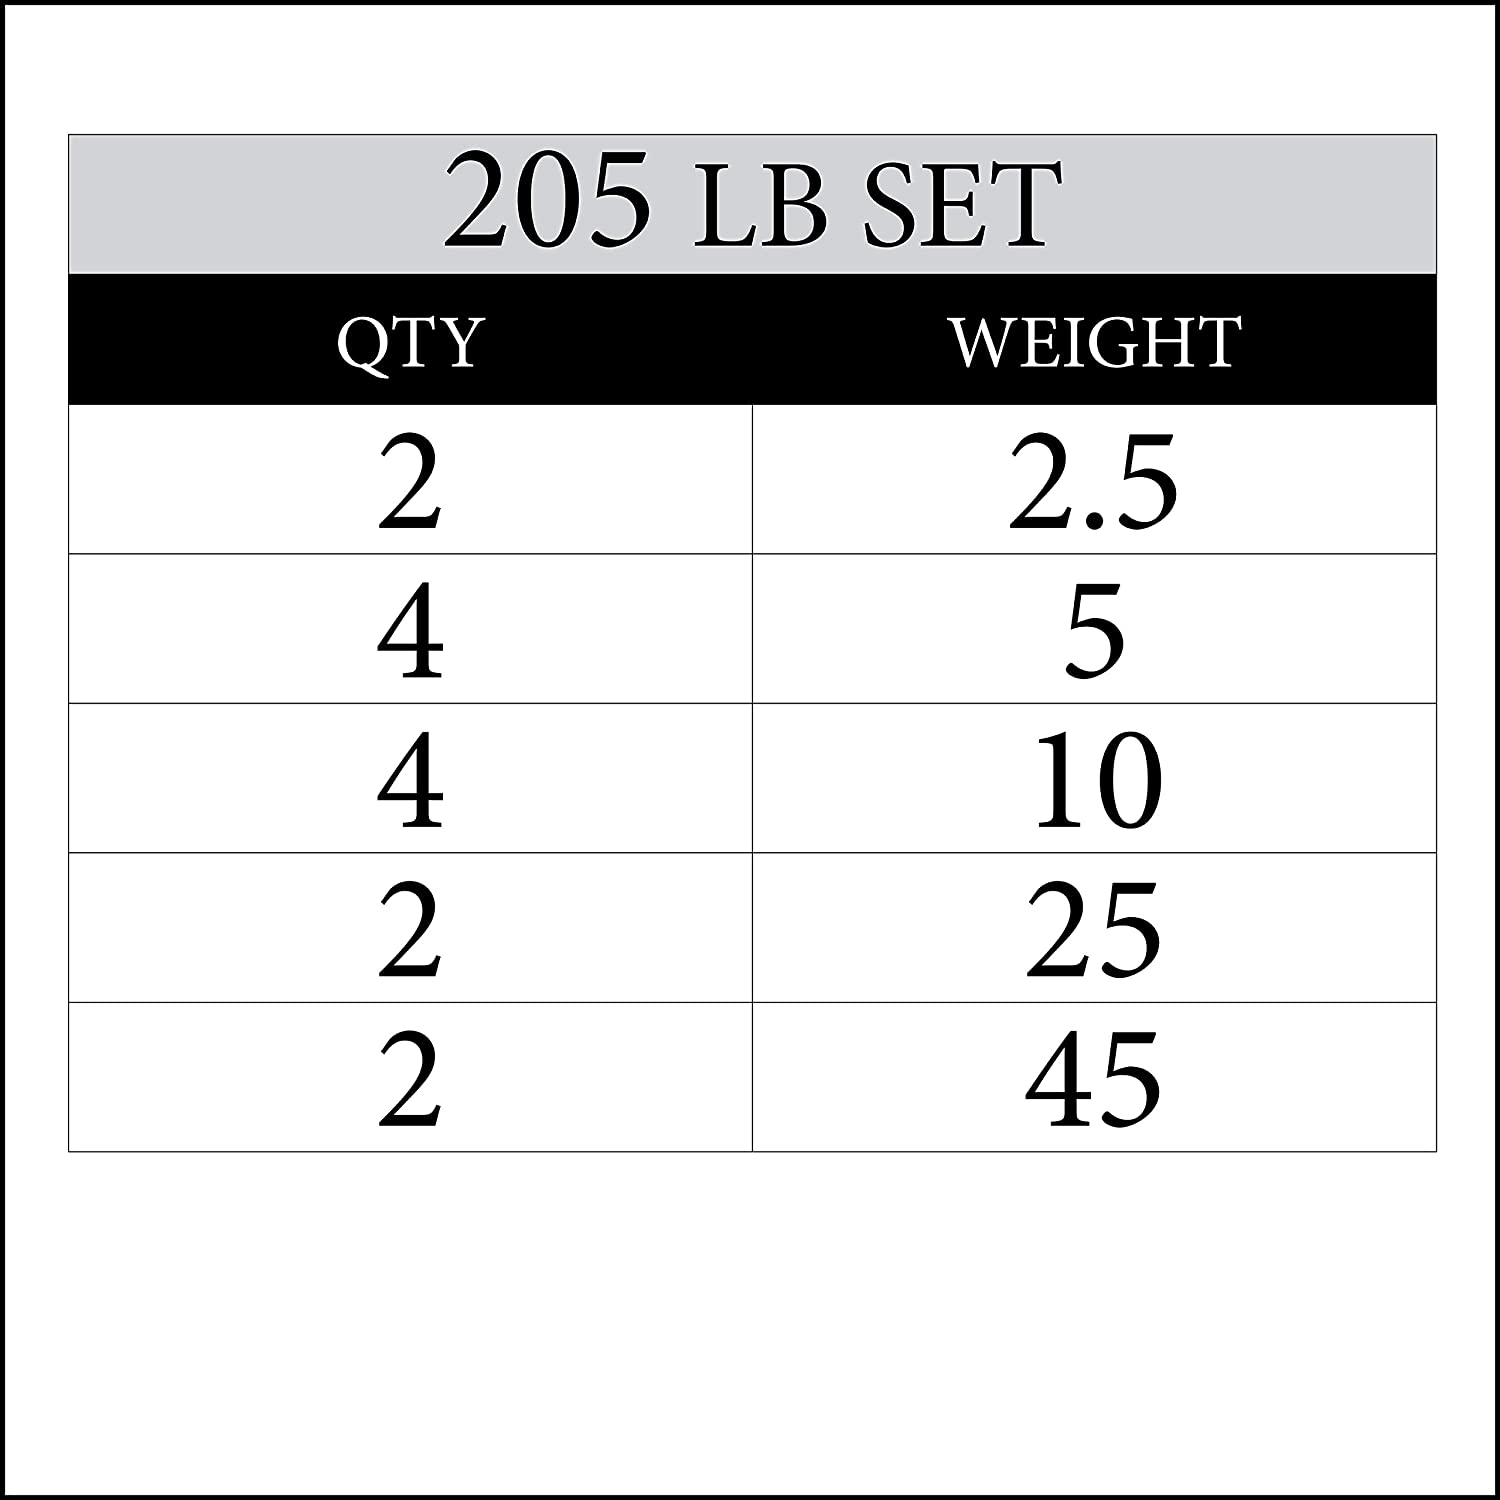 XMark Texas Star Plates, Olympic Weight Plates, Olympic Weight Pairs and Sets, 2-Inch Weight Plates, Patented Design